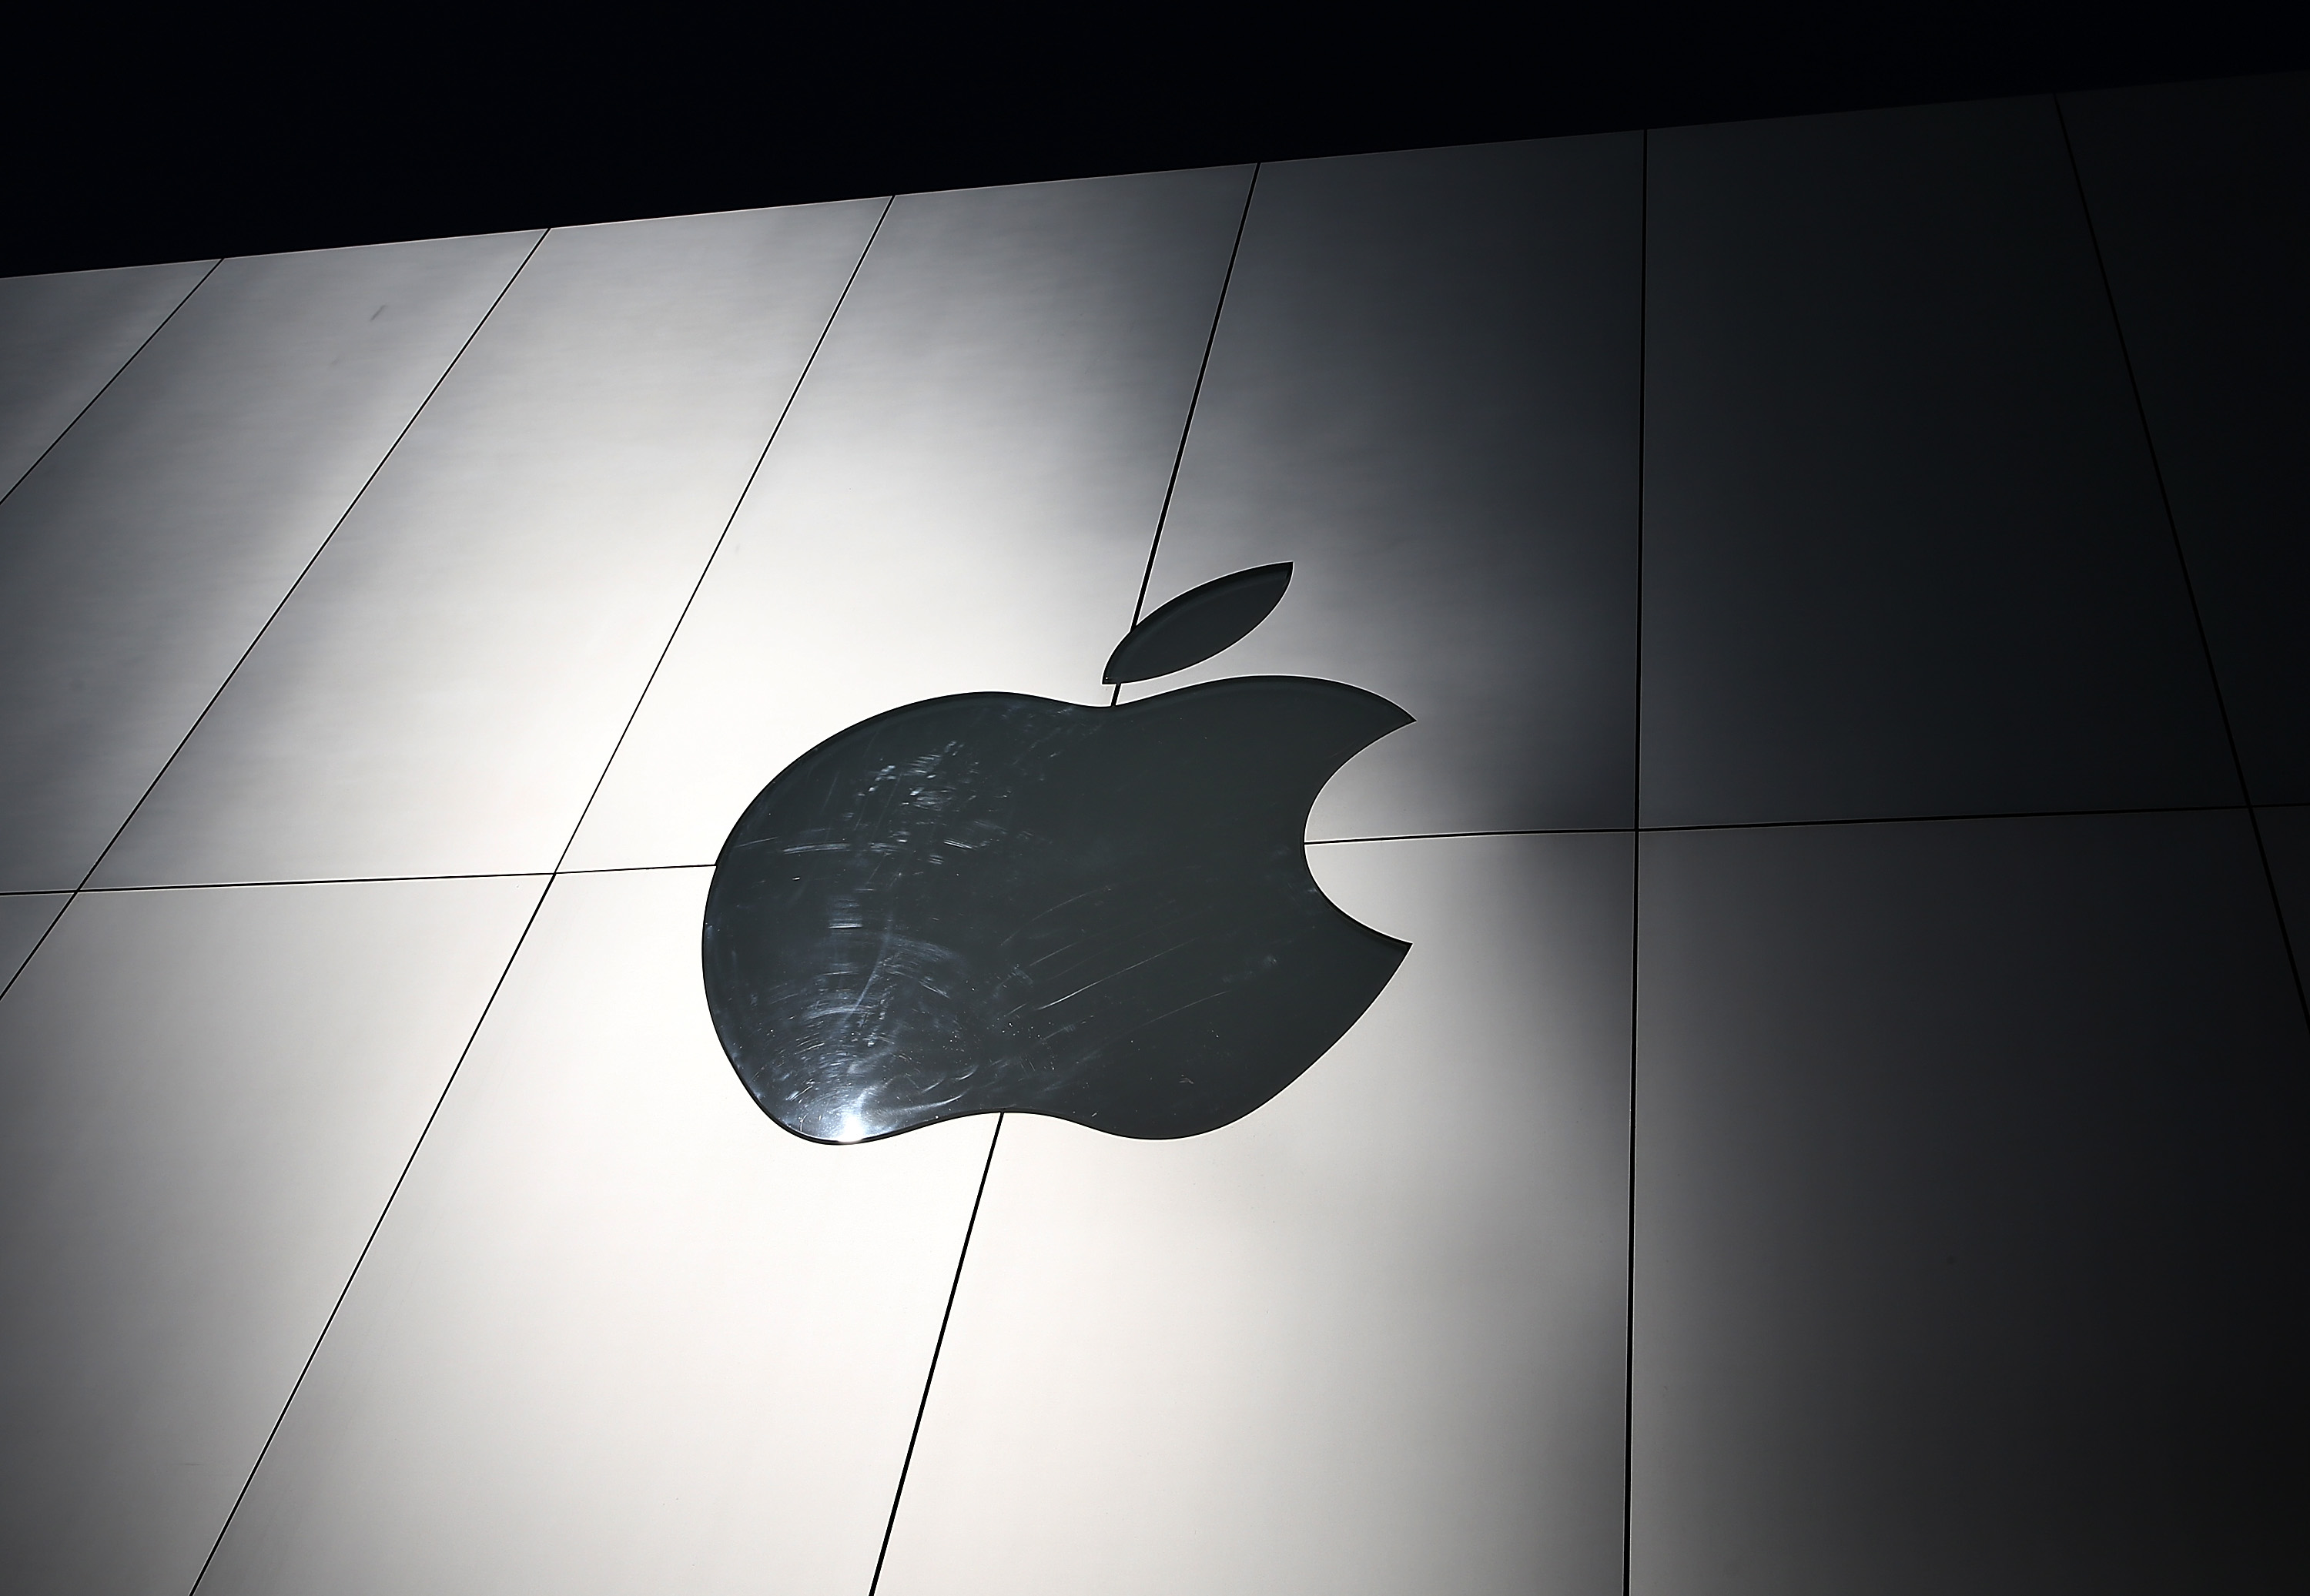 The Apple logo is displayed on the exterior of an Apple Store on April 23, 2013 in San Francisco, Calif.